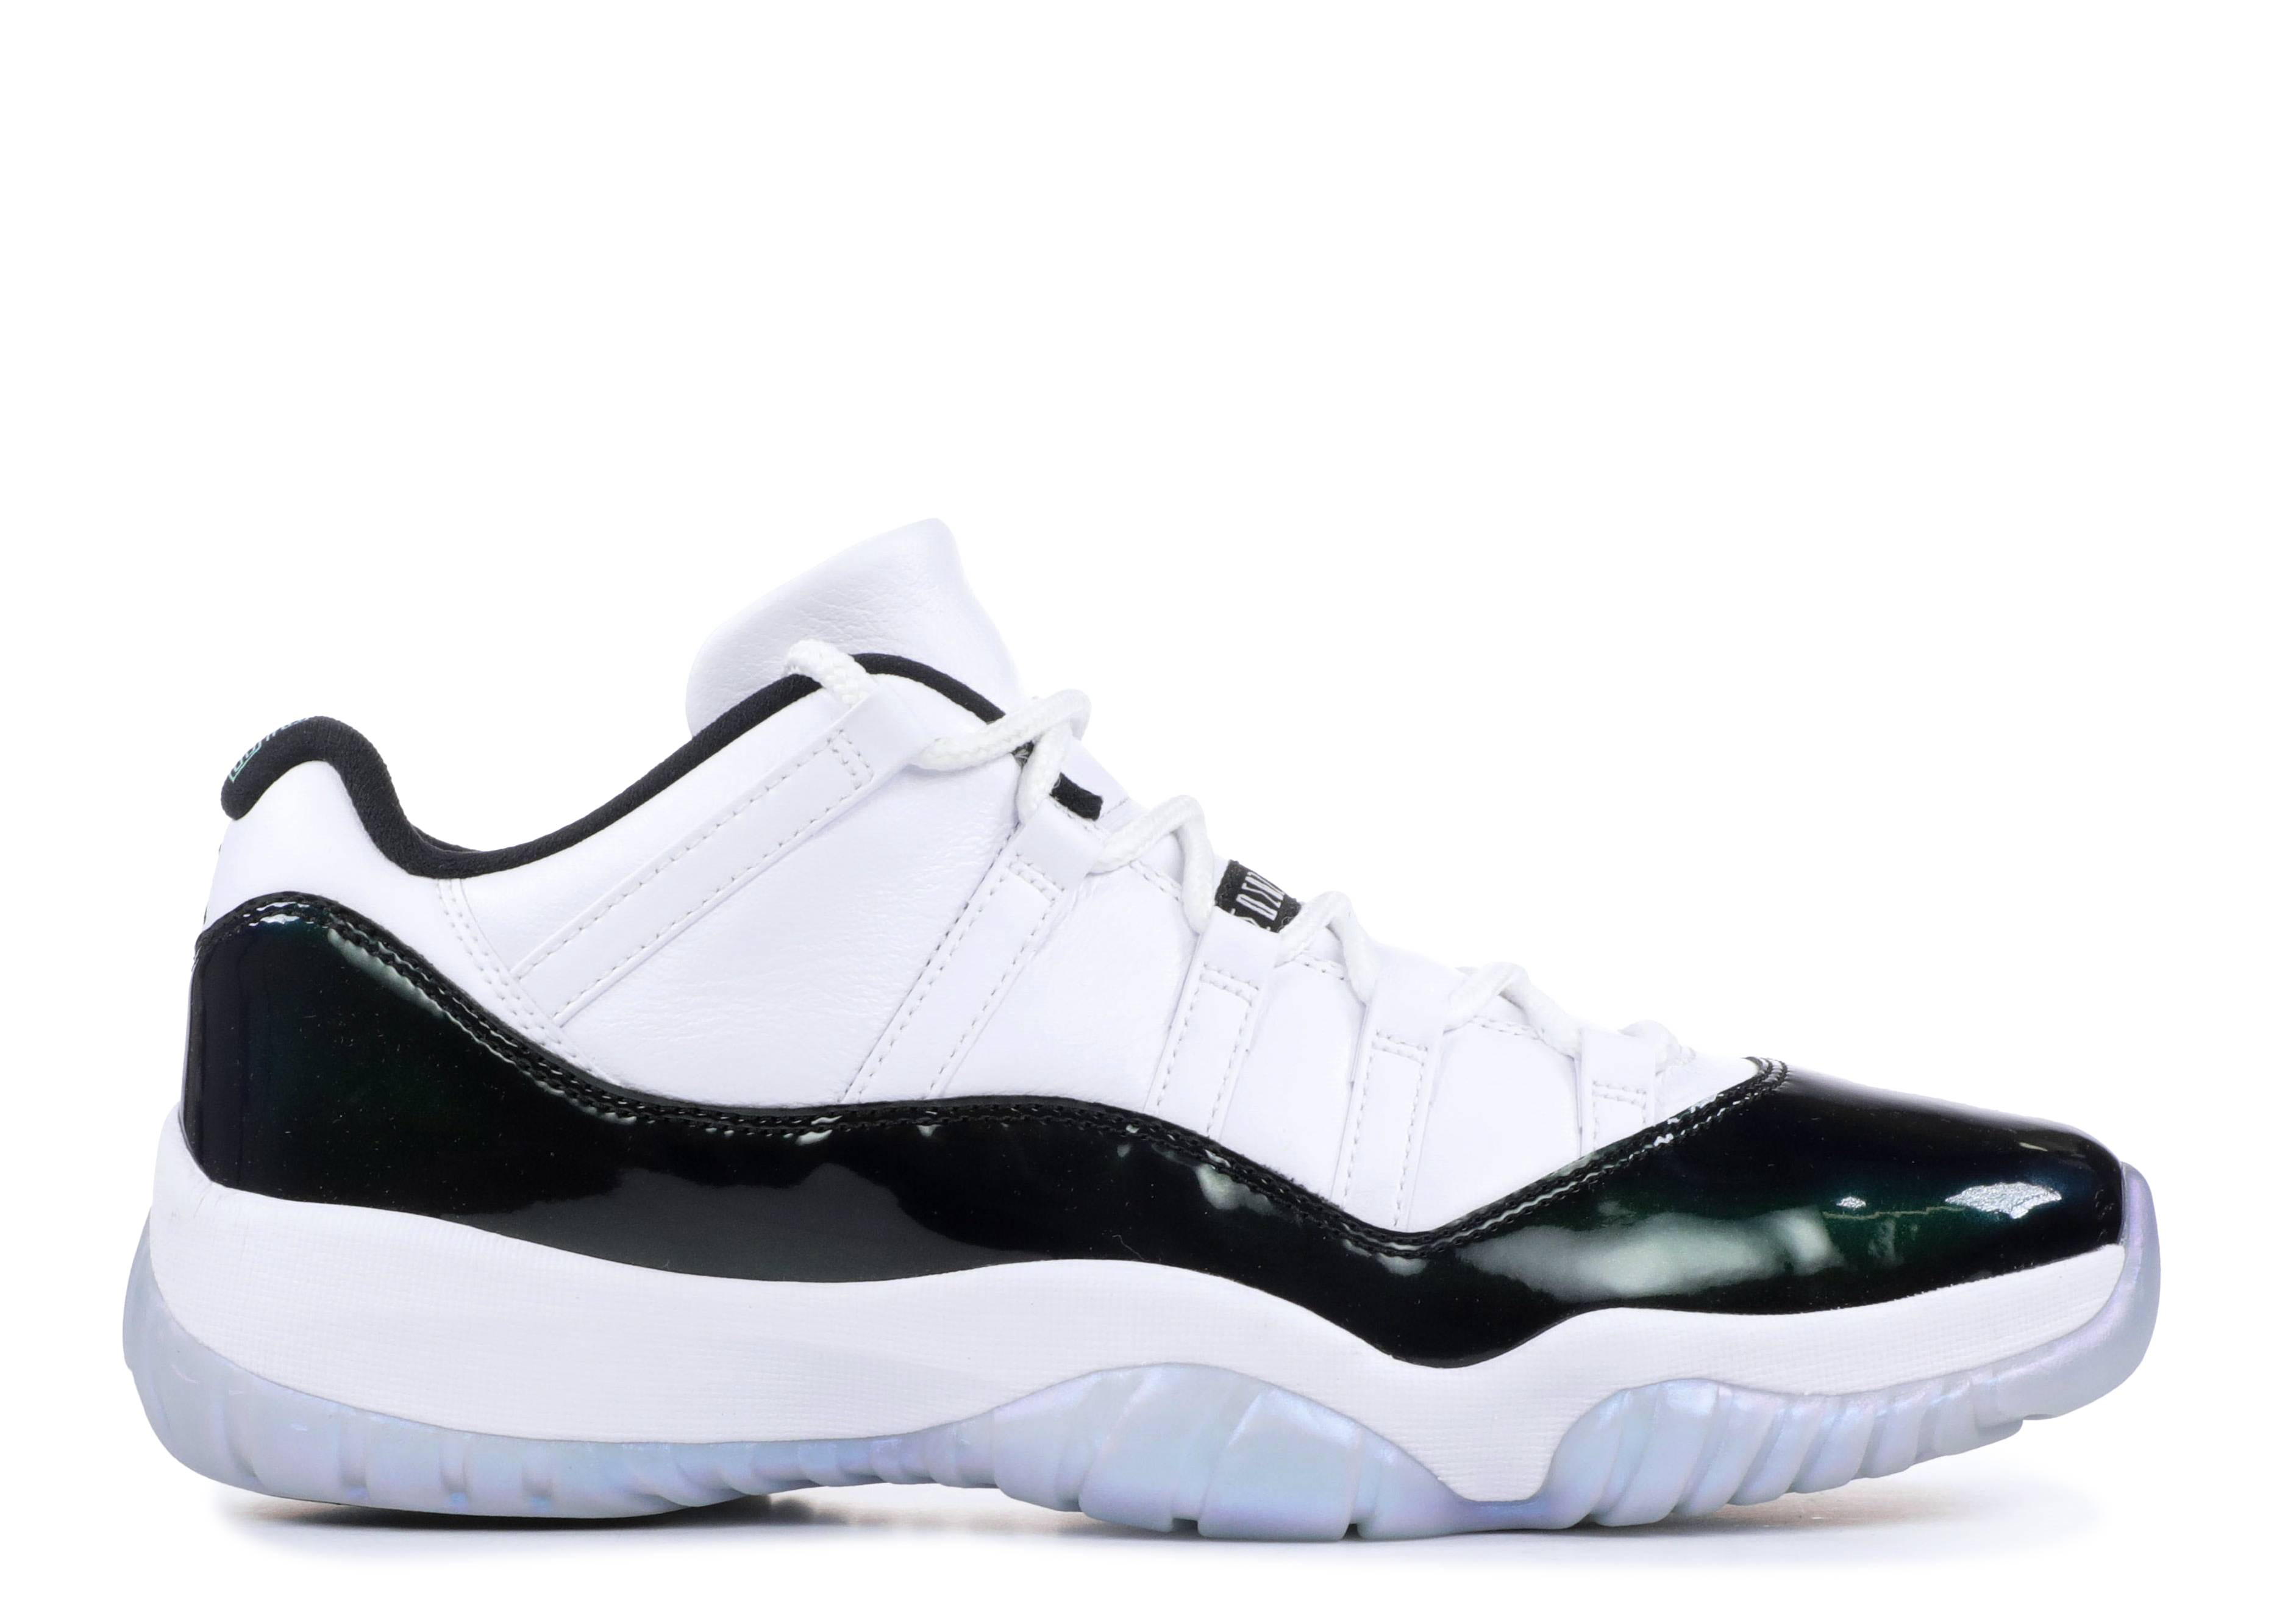 best service 8b5e4 c7ad8 Air Jordan 11 Retro Low